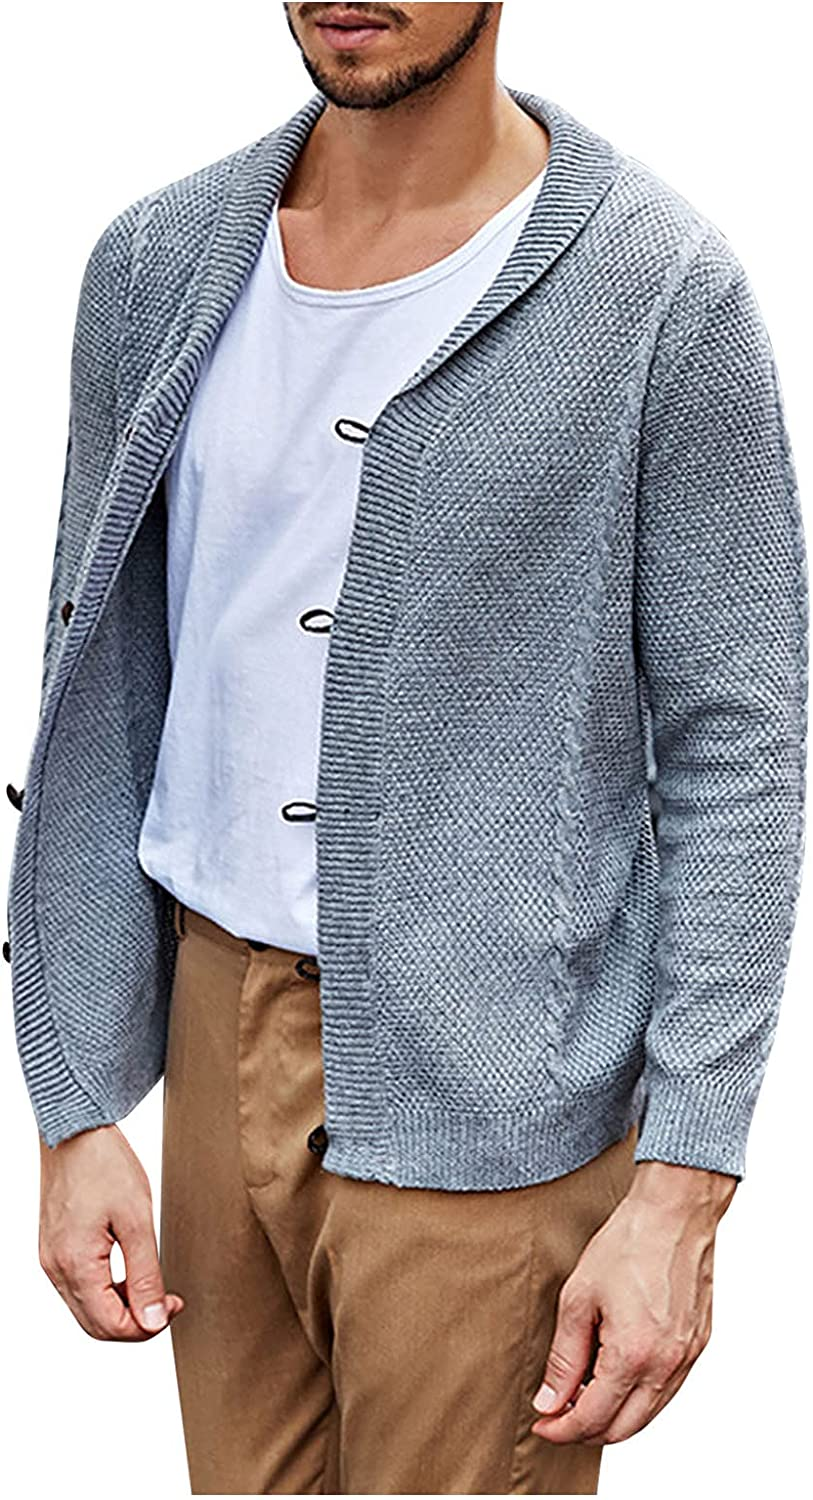 PAOGE Men's Autumn and Winter Pullover V-Neck Solid Color Cardigan Sweater Coat